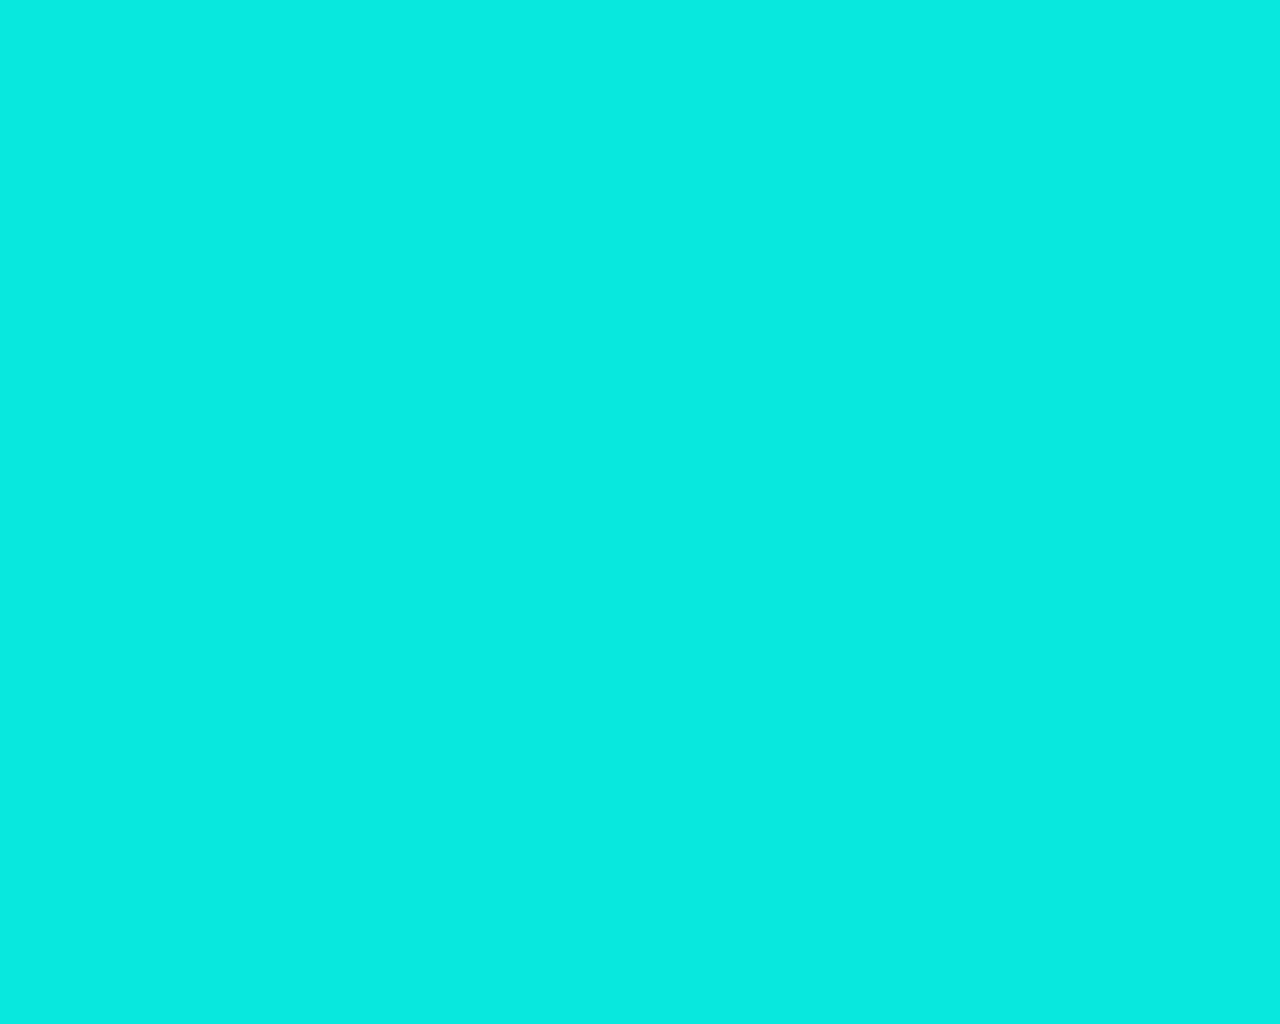 Turquoise Background Wallpaper Pictures To Pin On